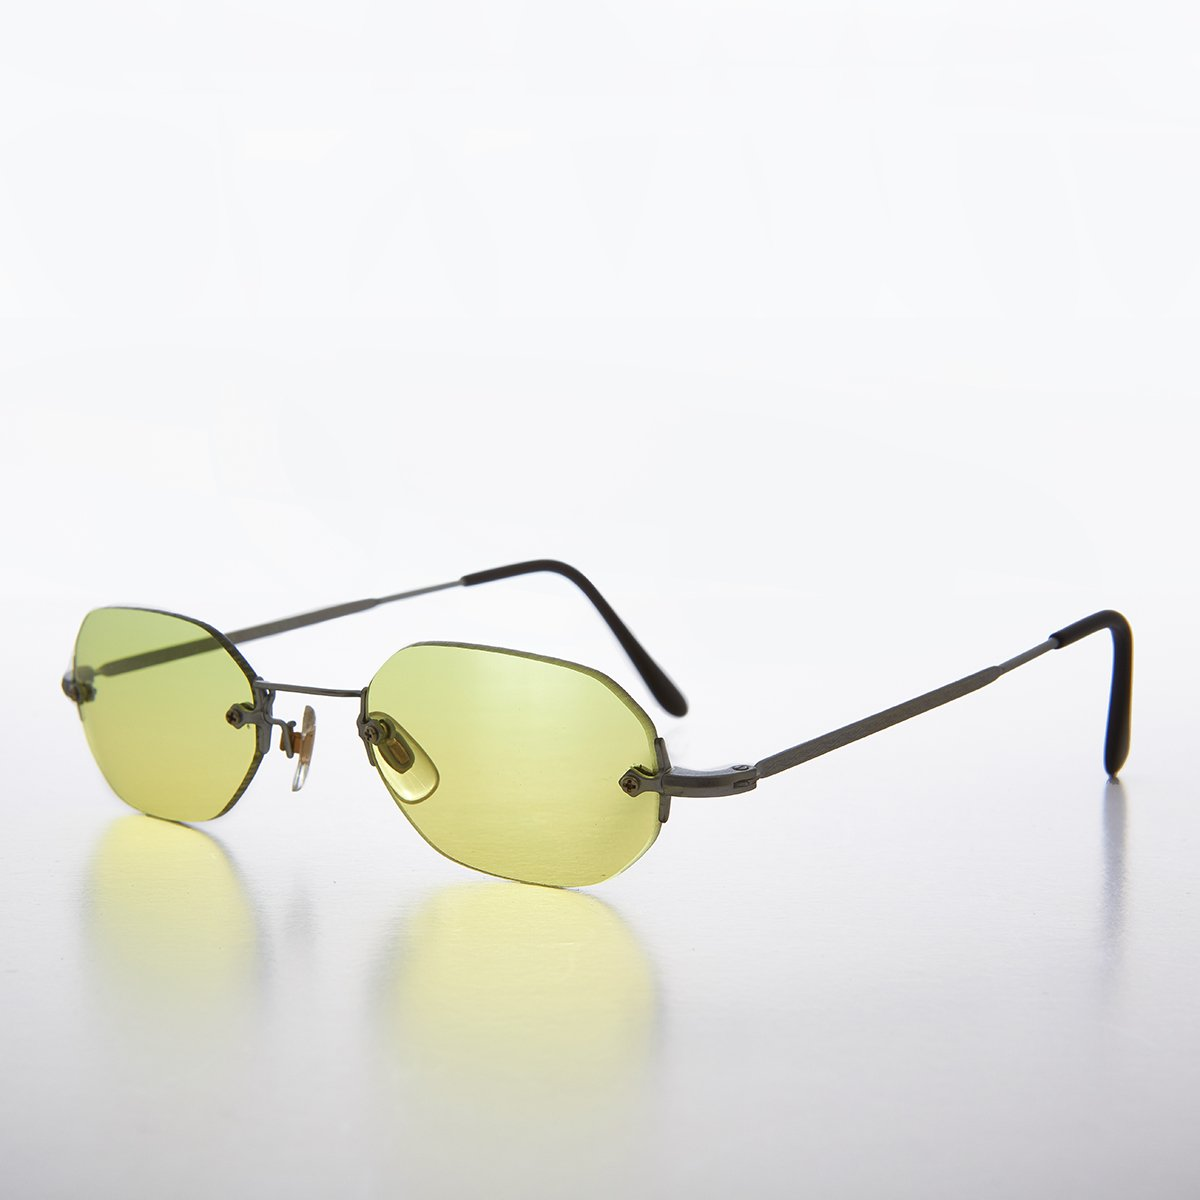 6a04735323 90s Colored Lens Rimless Octagon Vintage Sunglass - Cleo